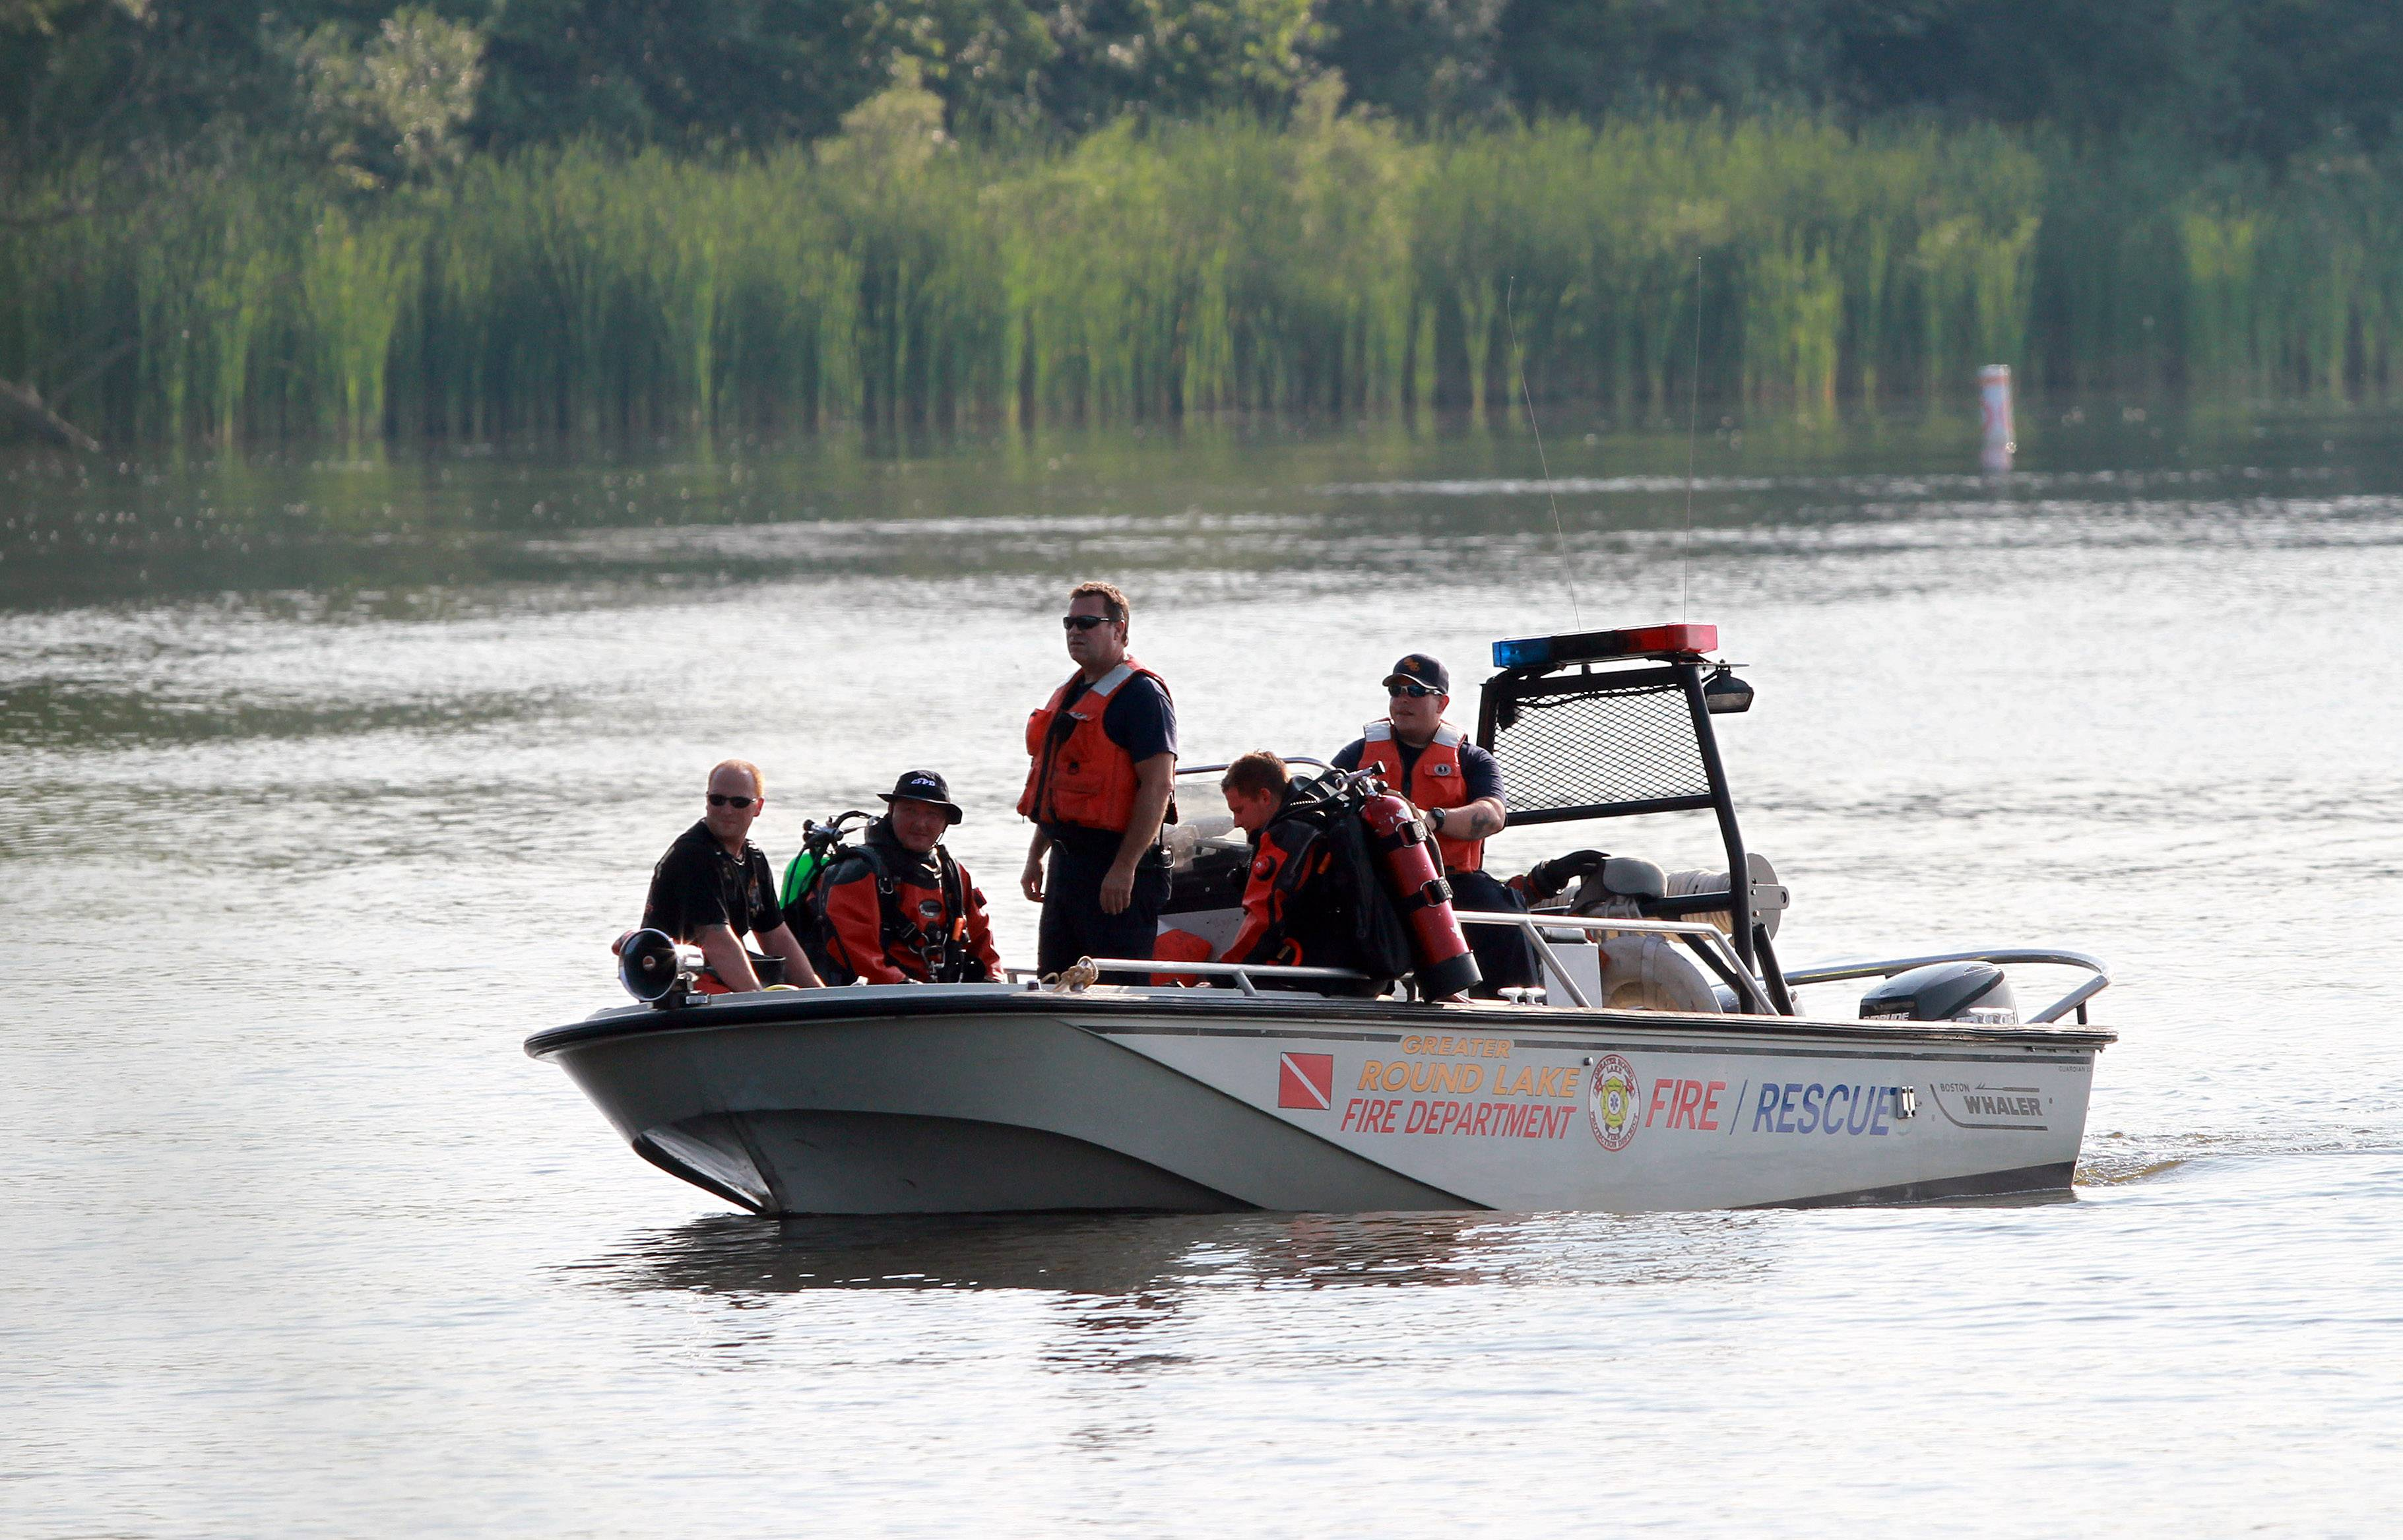 Divers searched the waters of Third Lake Monday afternoon for a missing Grayslake Central High School student. They recovered his body about 7 p.m.